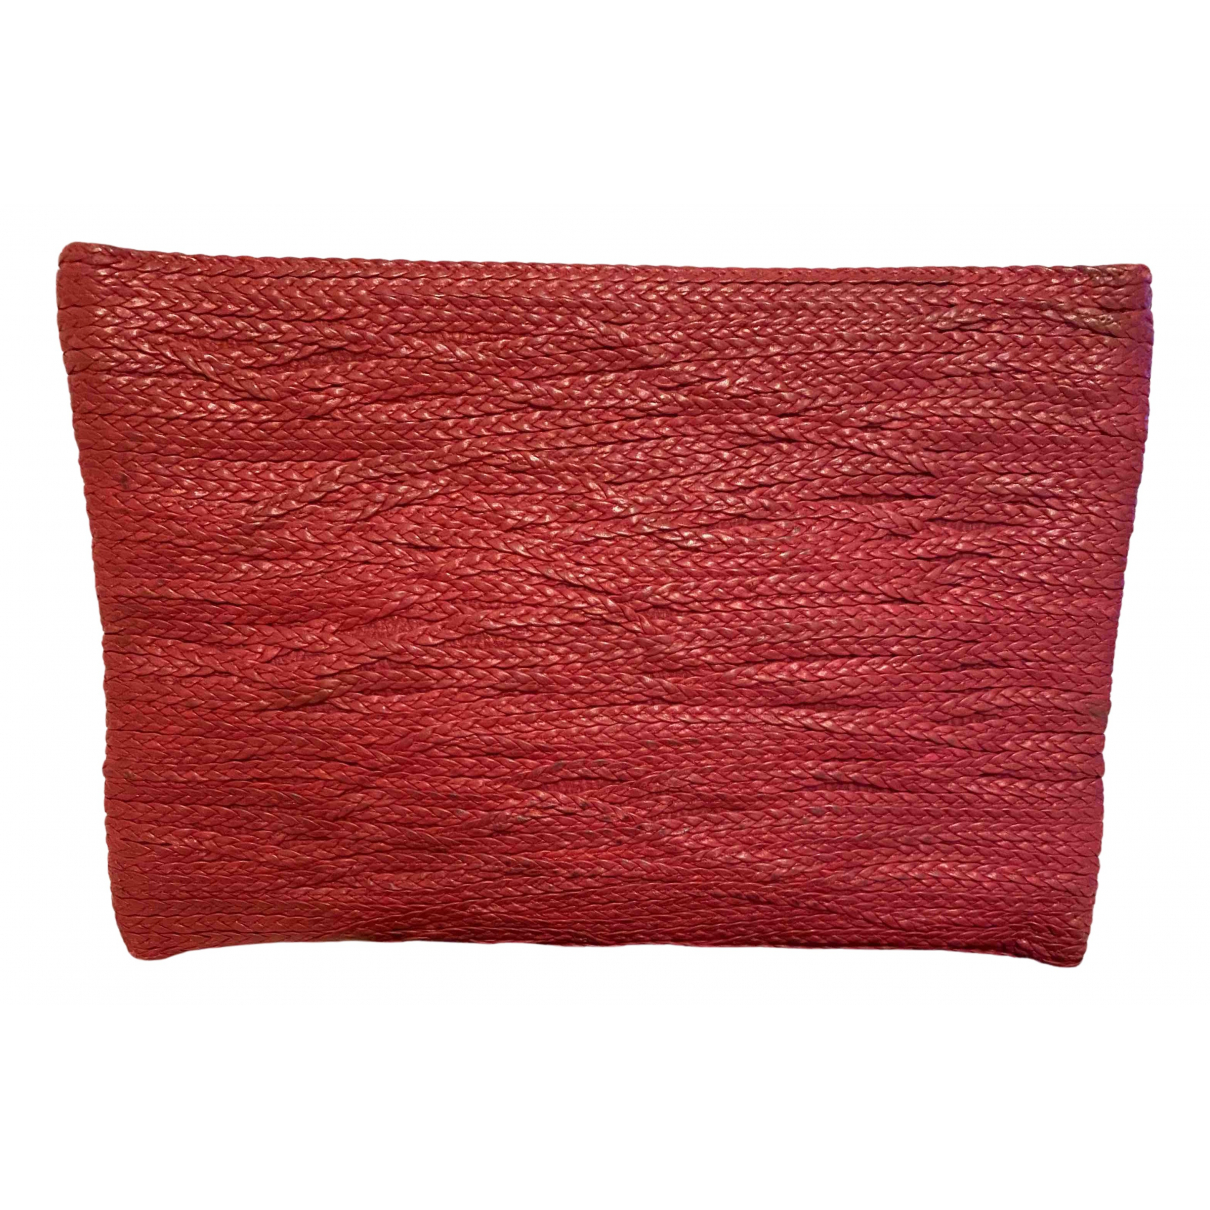 Jay Ahr N Red Leather Clutch bag for Women N